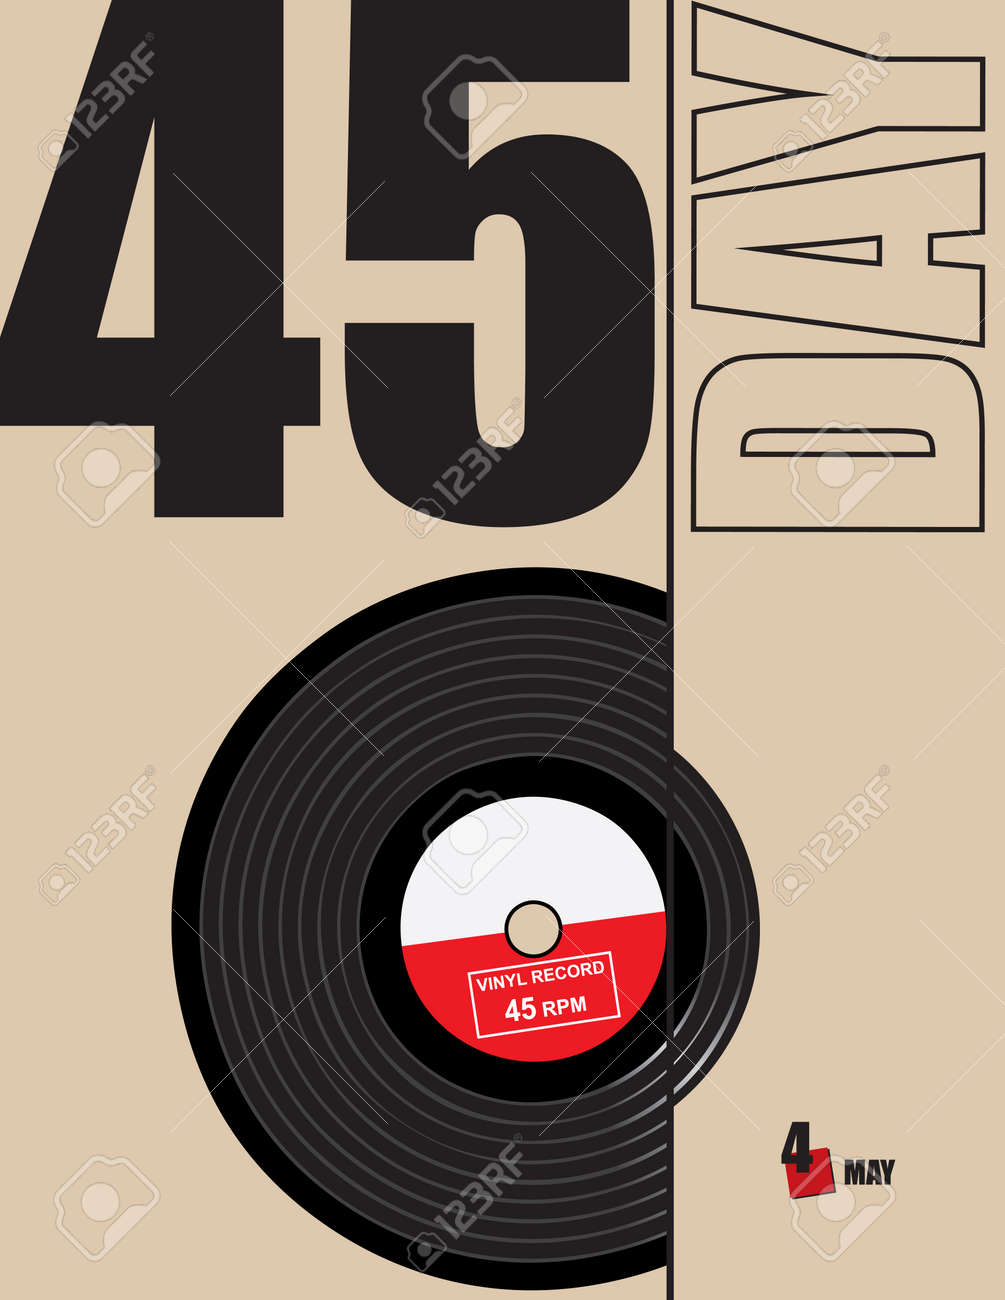 Poster for the celebration of 45 Day - 45 rpm vinyl record. Vector illustration. - 169441836